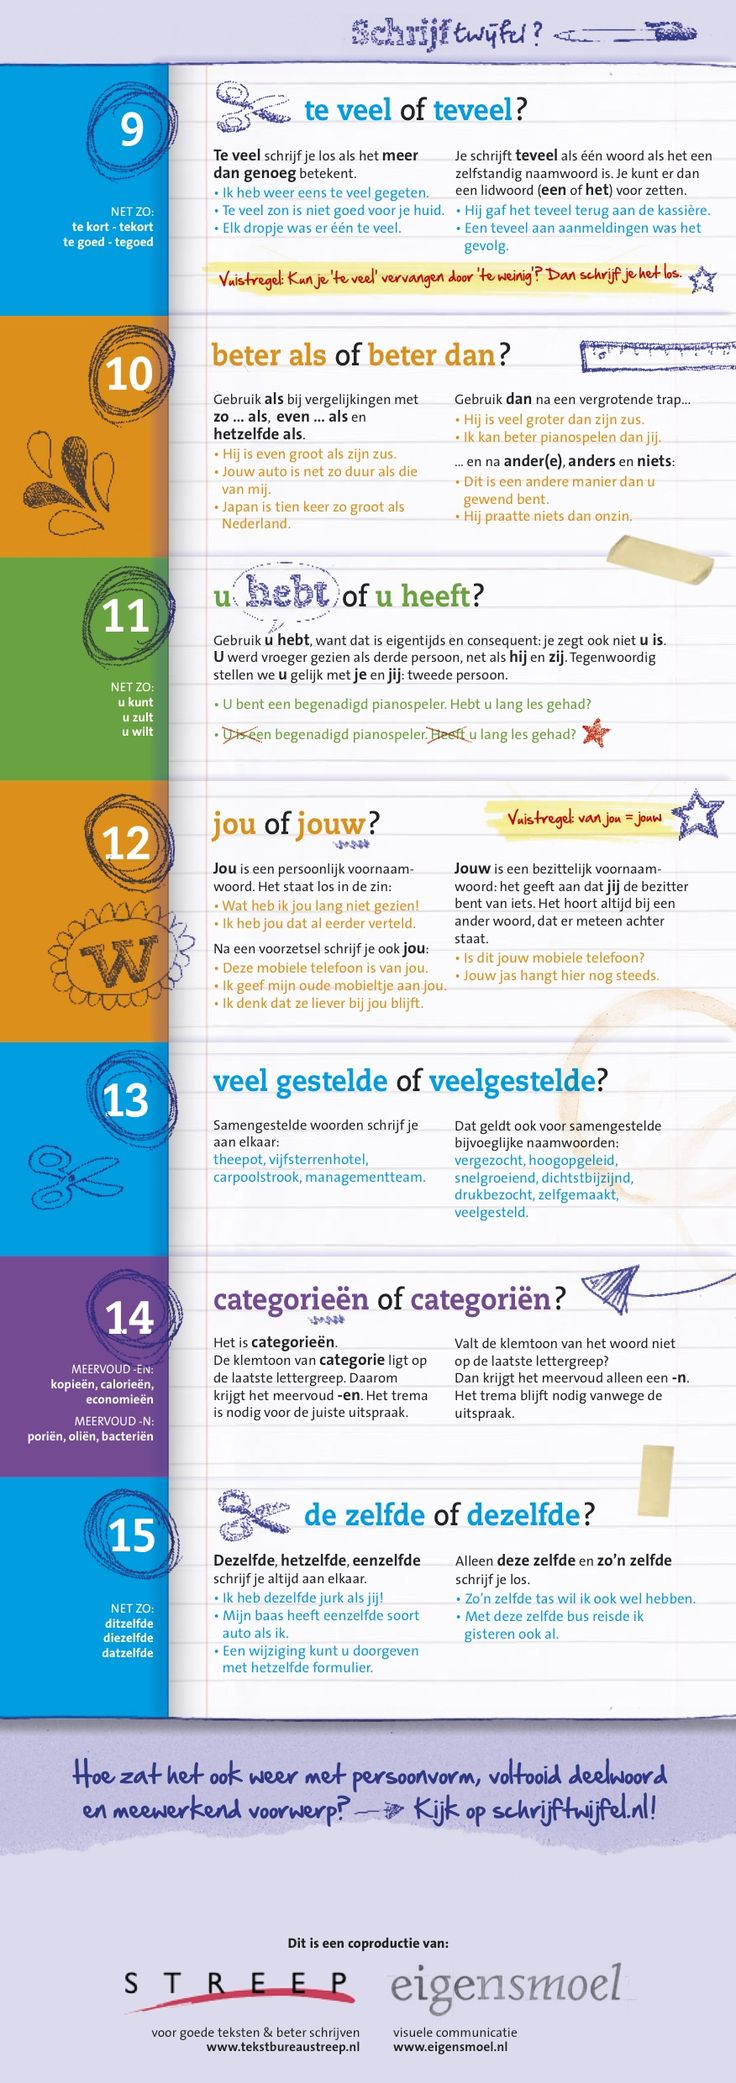 infographic-definitief-nov2014b.jpg 876×2.480 pixels